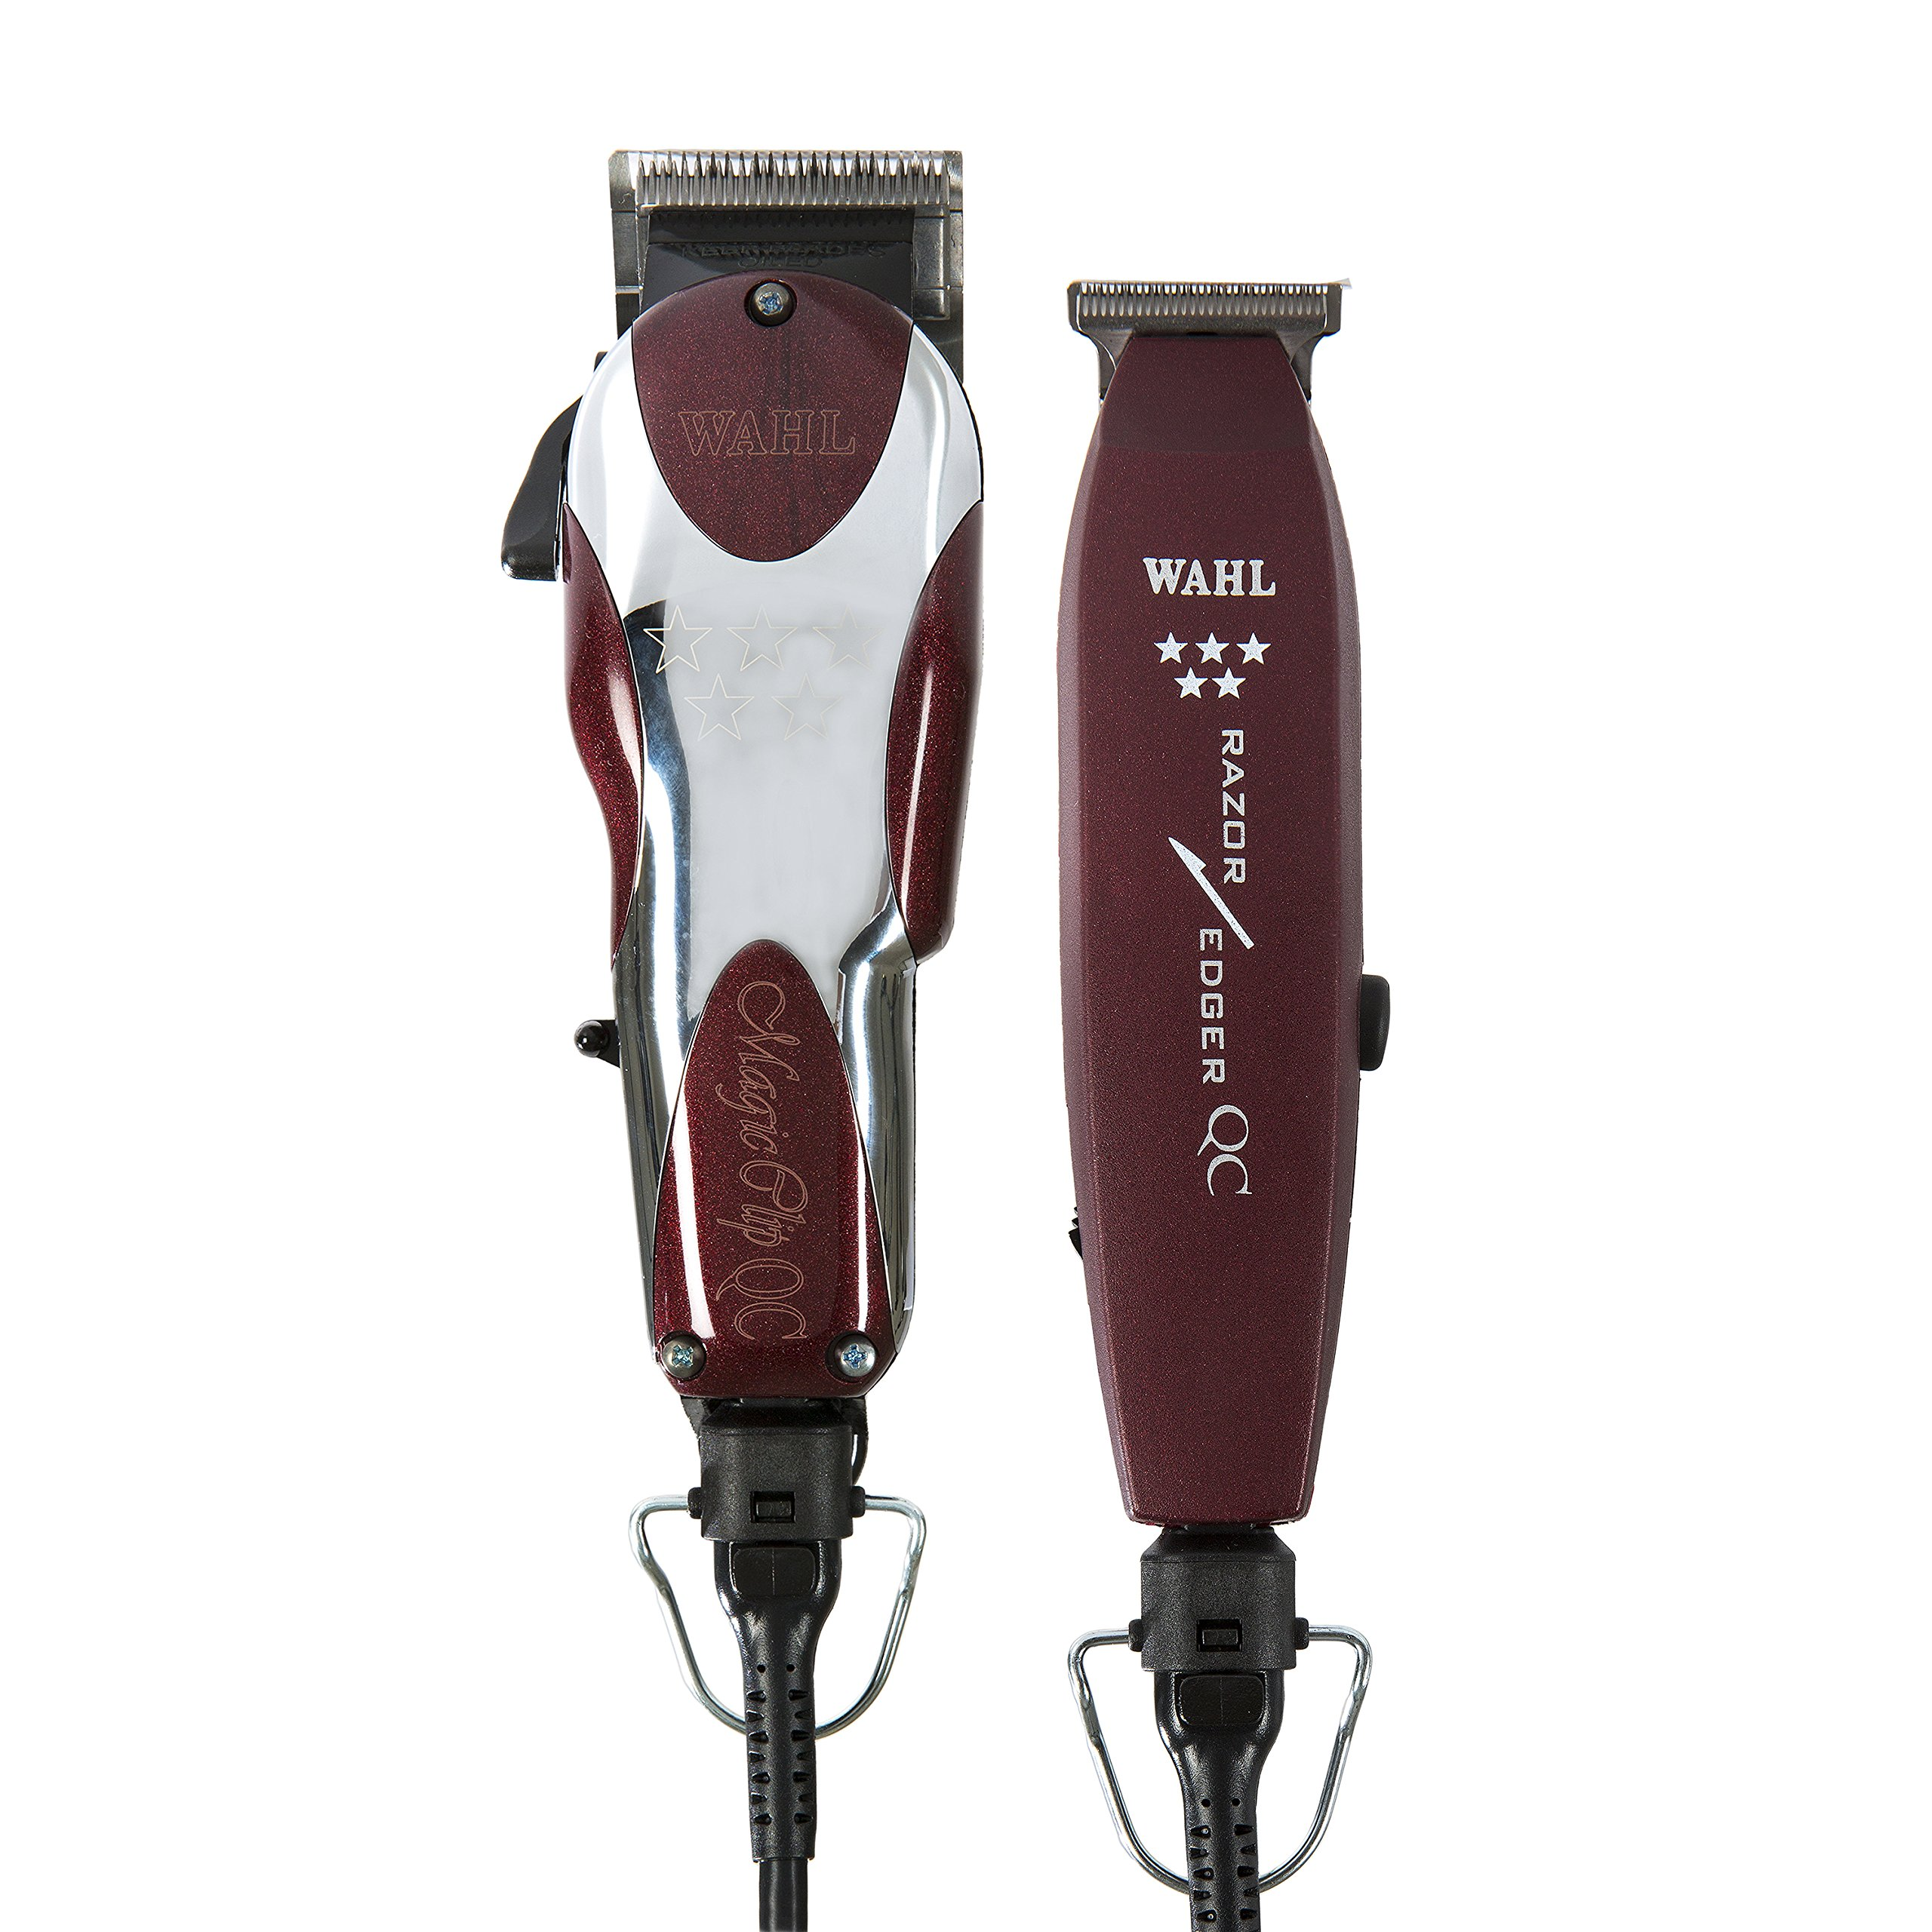 Wahl Professional 5-Star Unicord Combo #8242 – Reduce Your Cord Clutter! – Features the Magic Clip and Razor Edger – Great for Fading, Blending, and Edging by Wahl Professional (Image #5)